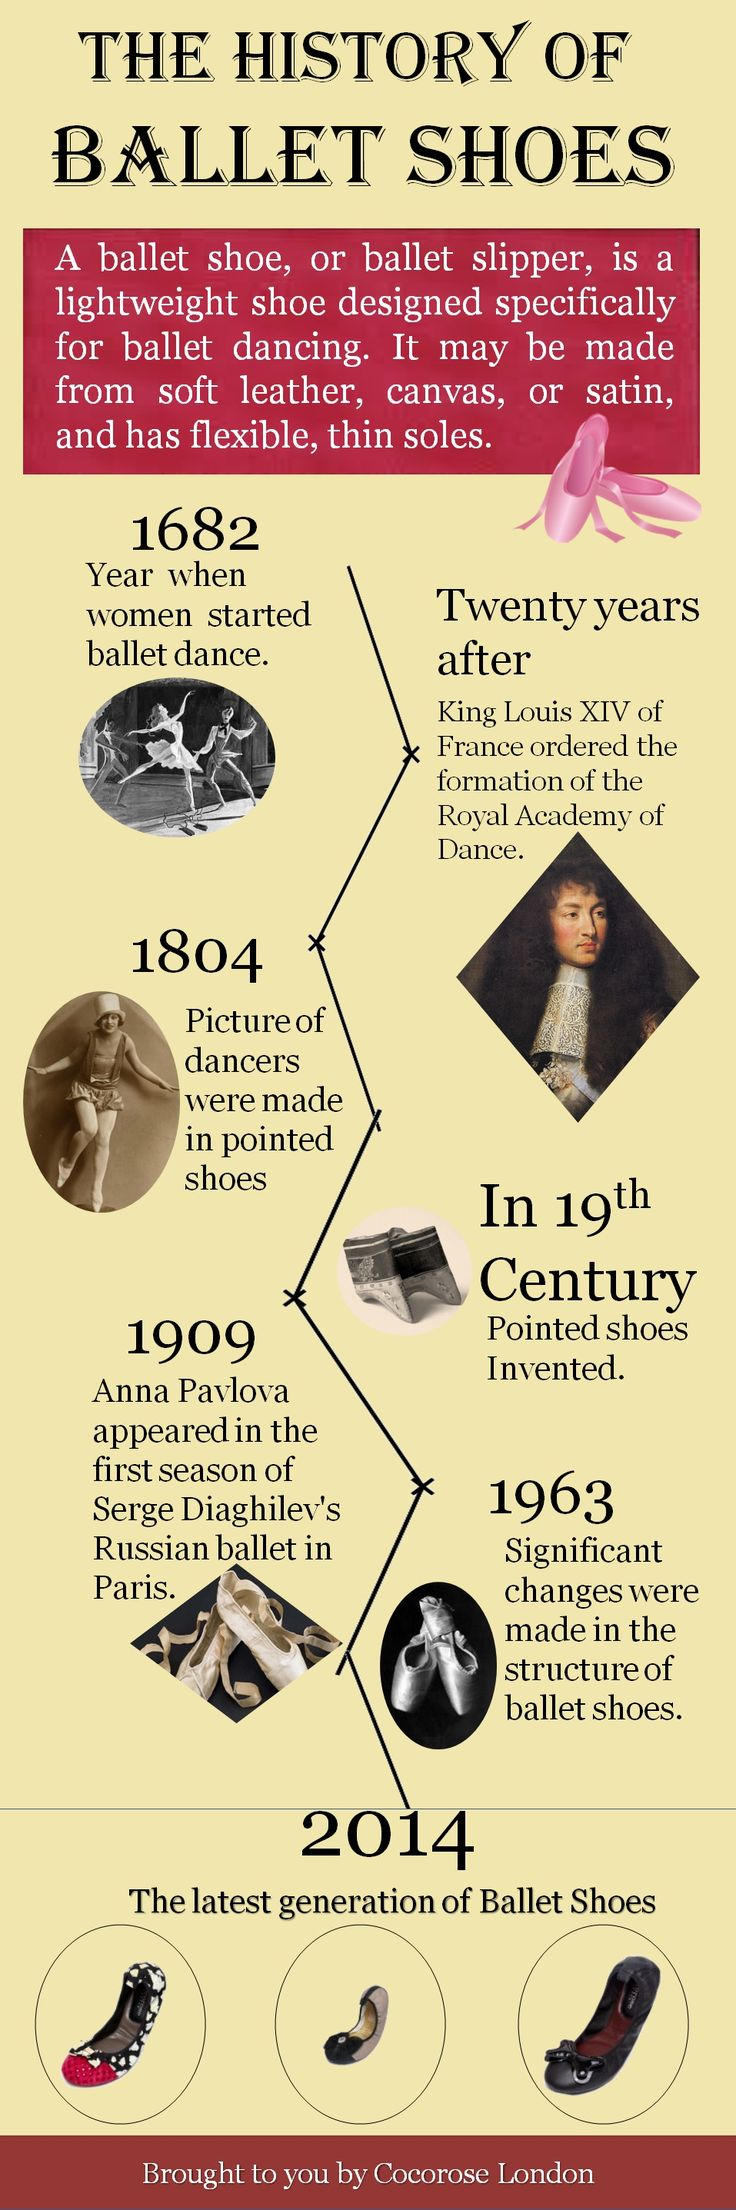 The History of Ballet Shoes #infographic #infografía